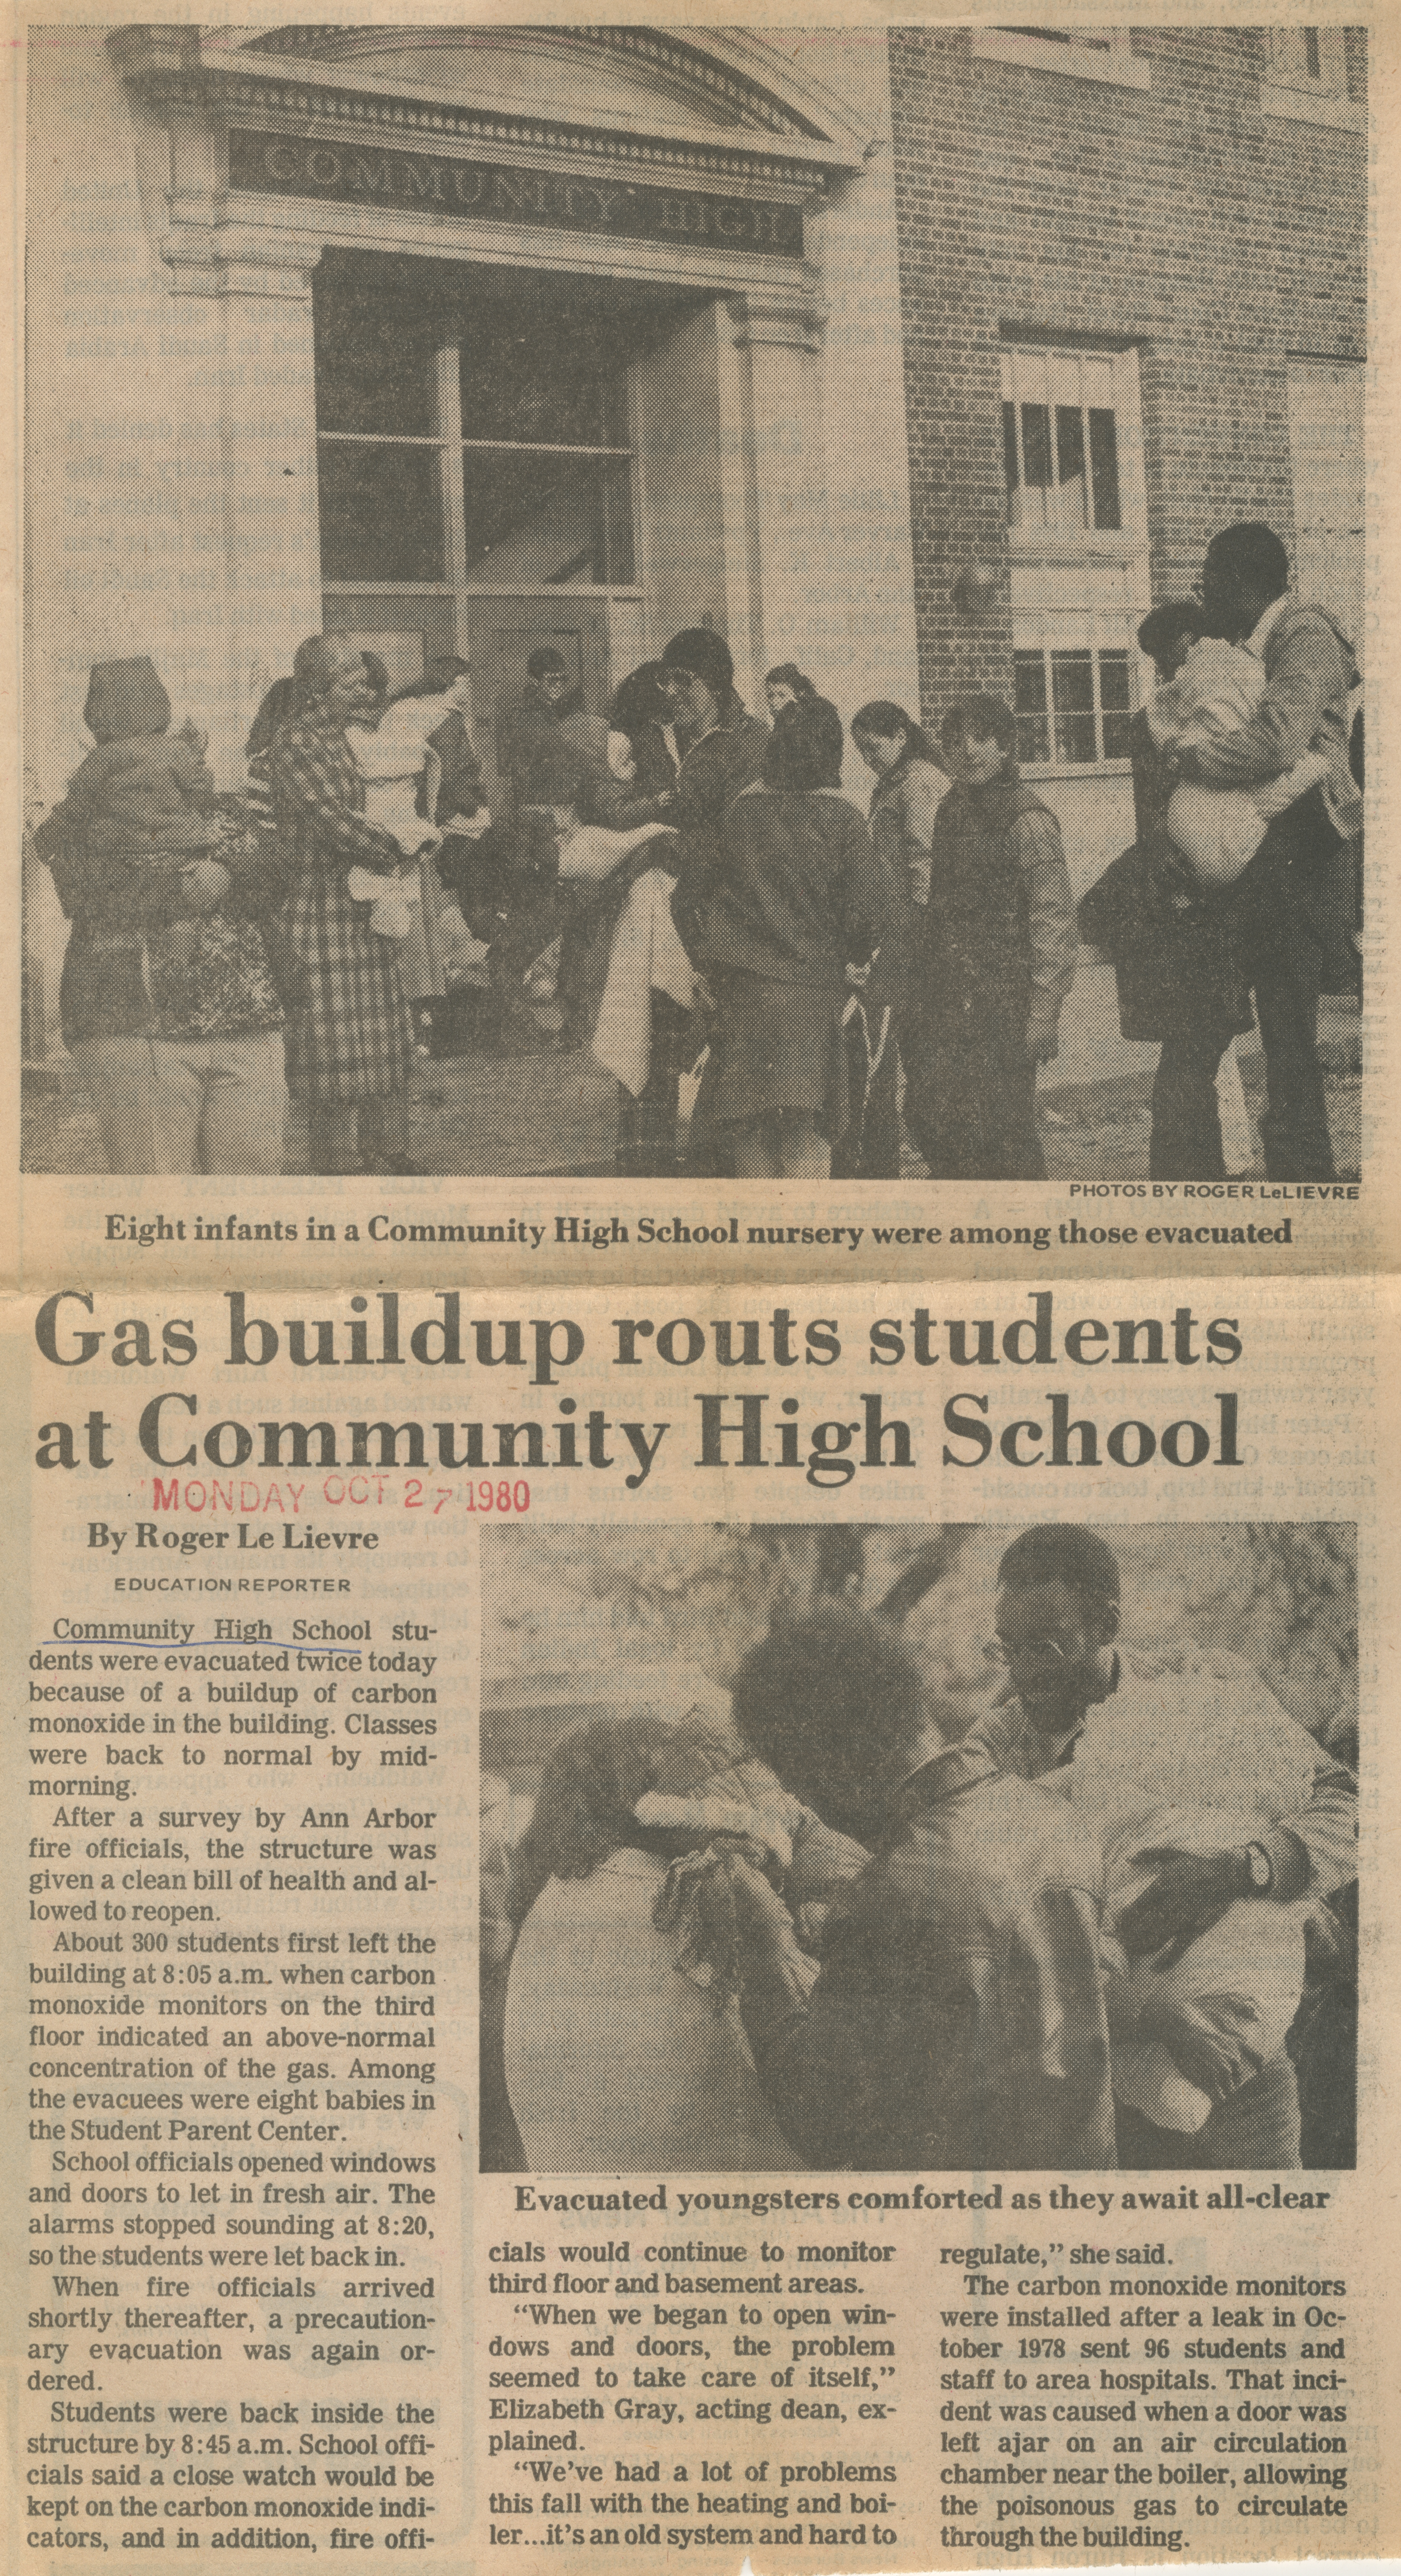 Gas buildup routs students at Community High School image